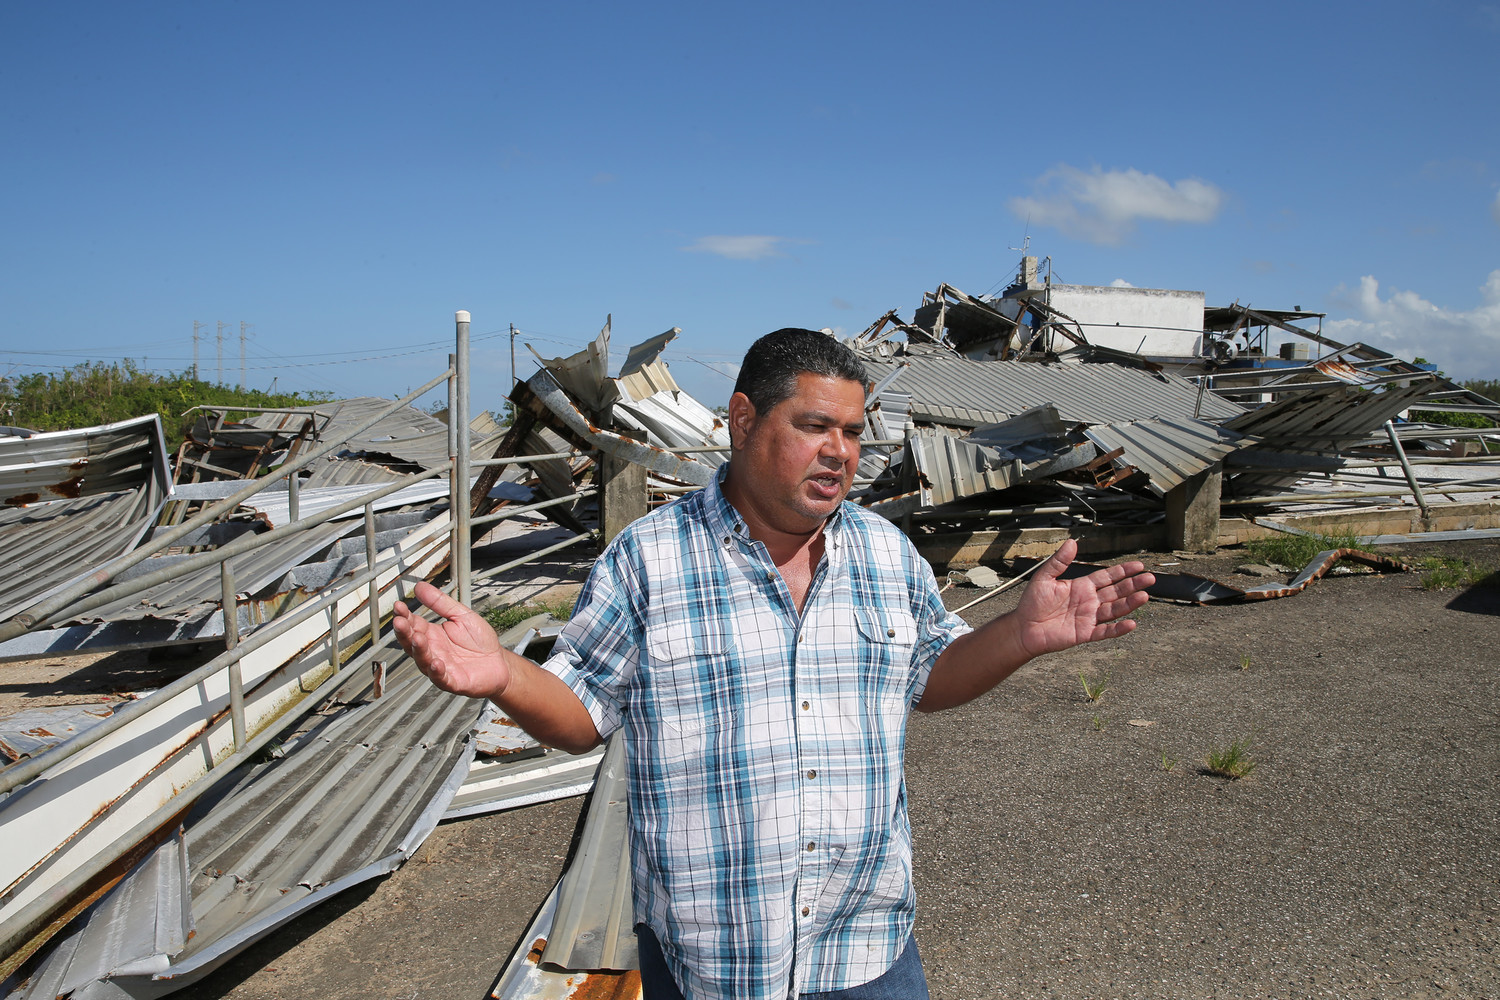 DESTRUCTION—Dairy farmer Gustavo Tirado, who is Catholic, stands near his destroyed farm buildings Oct. 22 in Hatillo, Puerto Rico, more than one month after Hurricane Maria devastated the island.